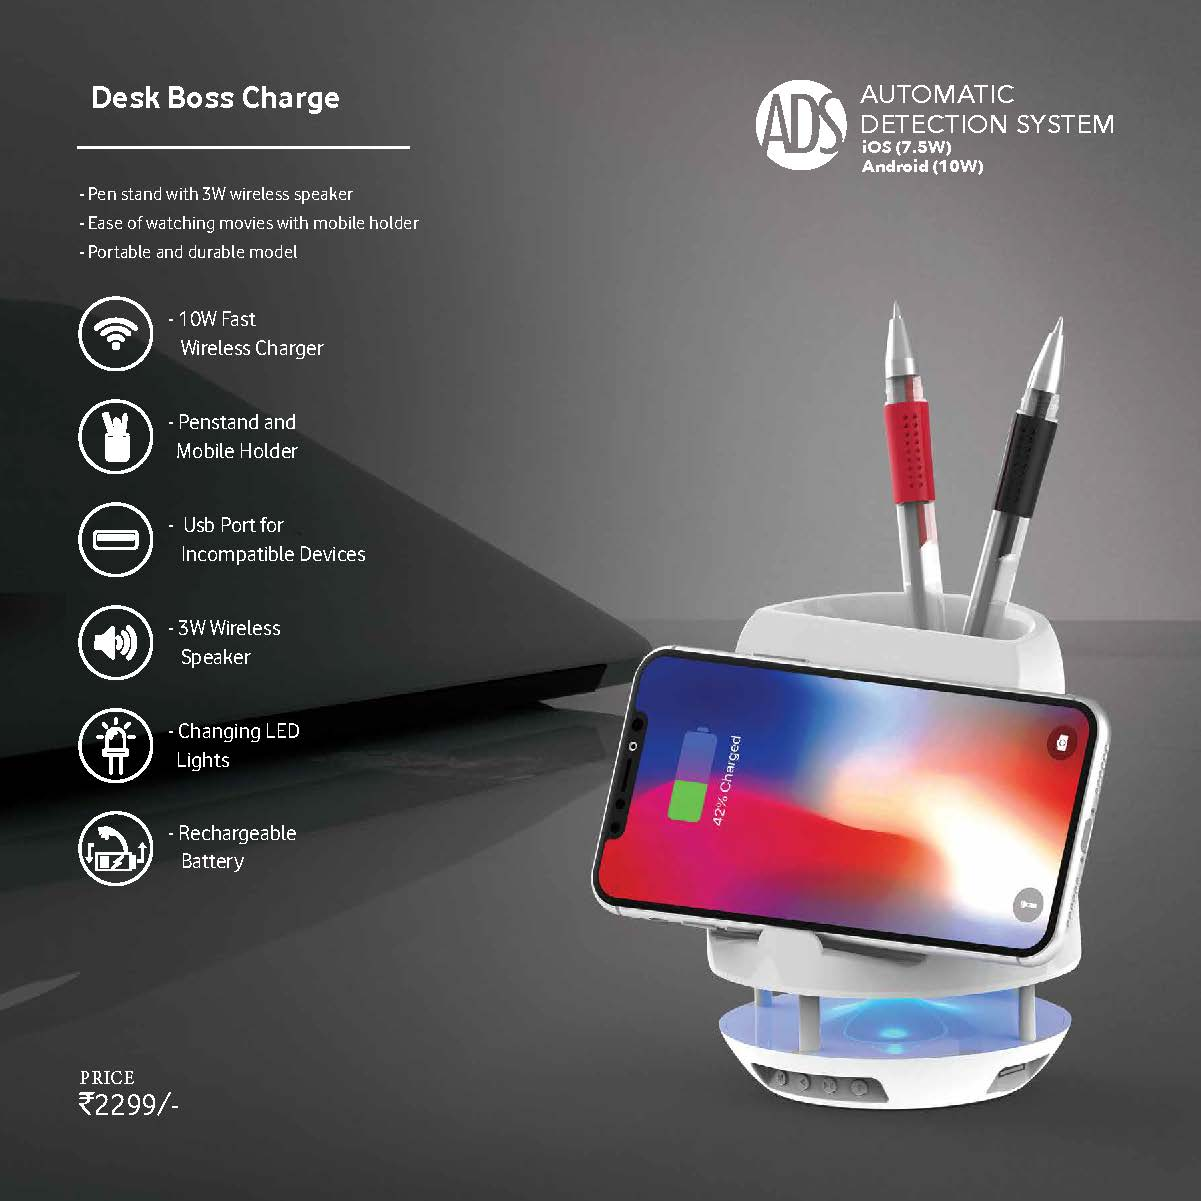 Desk Boss Charge - Bluetooth Speaker with Wireless Charger